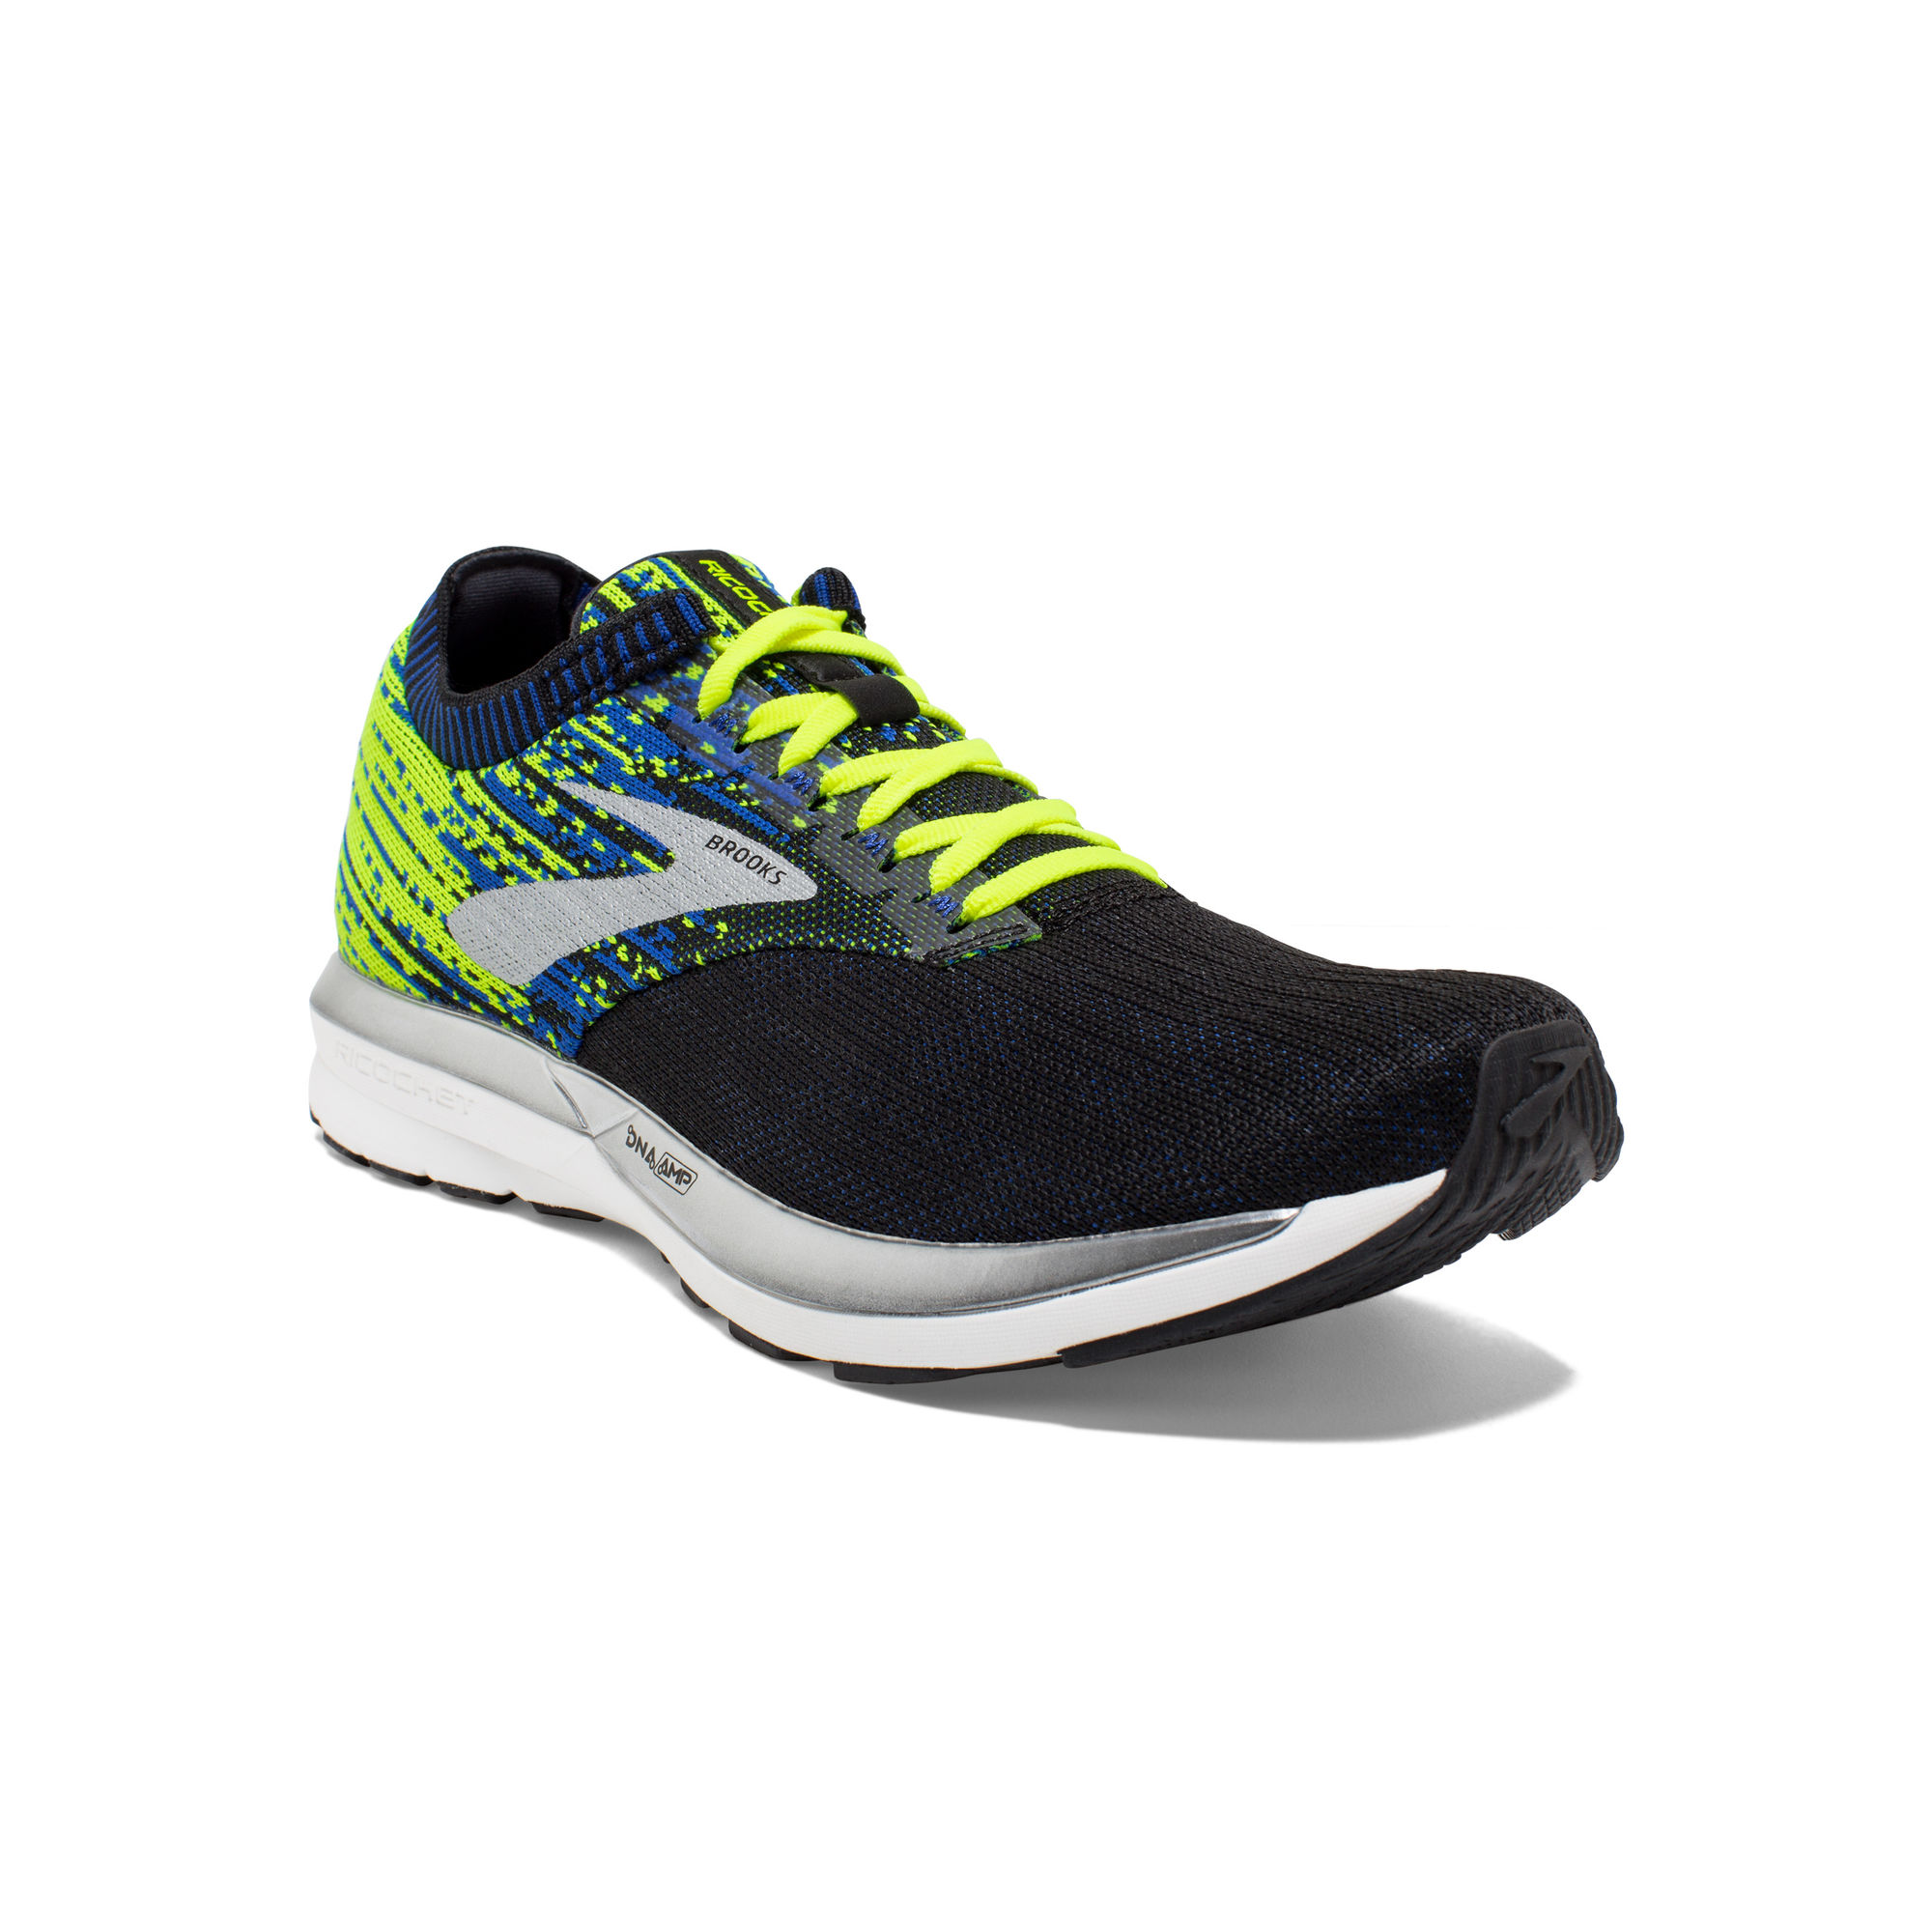 Brooks Ricochet in Blau Gelb